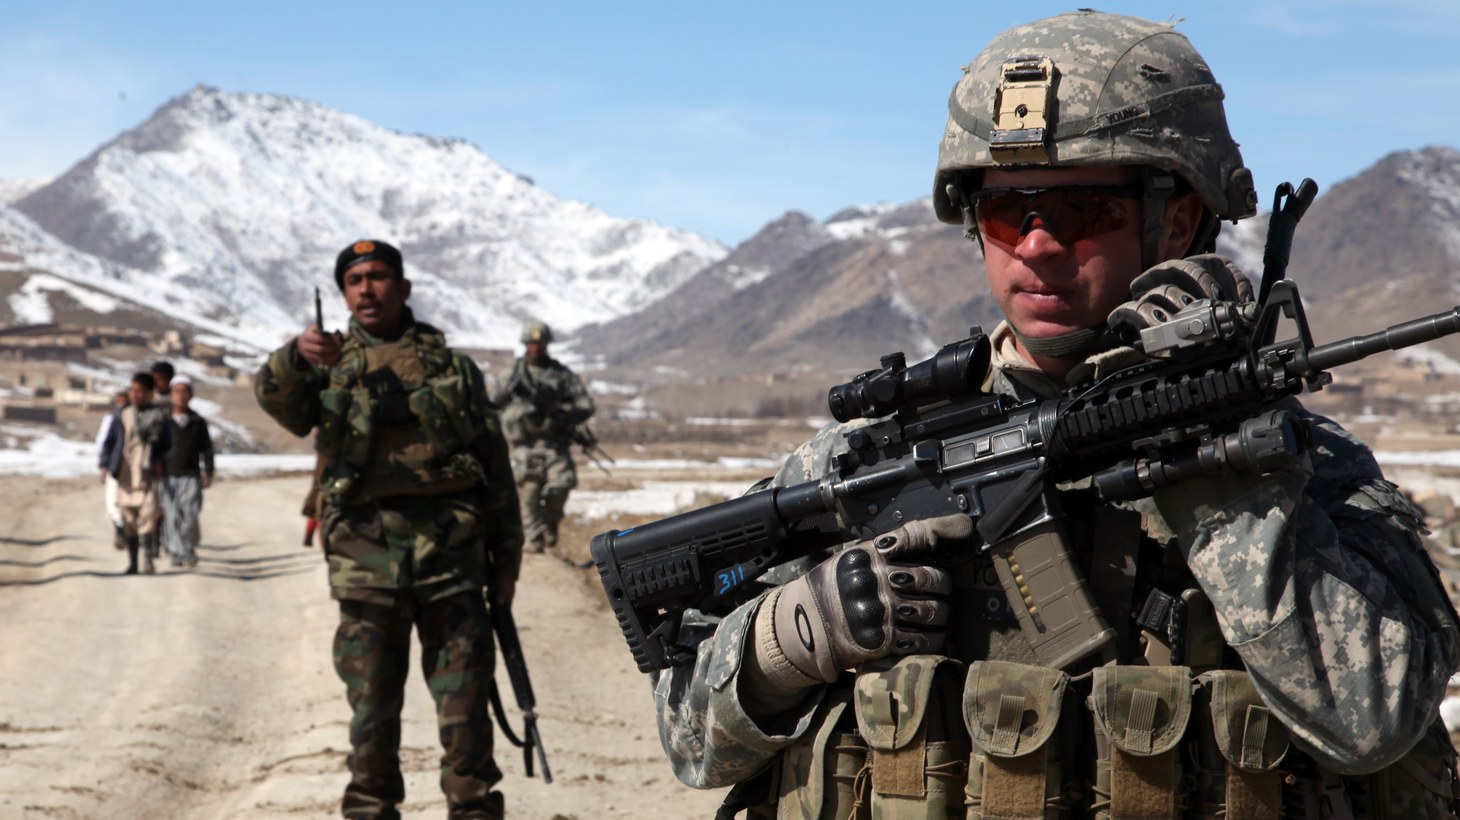 A U.S. Army soldier conducts a patrol with a platoon of Afghan national army soldiers to check on conditions in the village of Yawez, Wardak province, Afghanistan, Feb. 17, 2010.